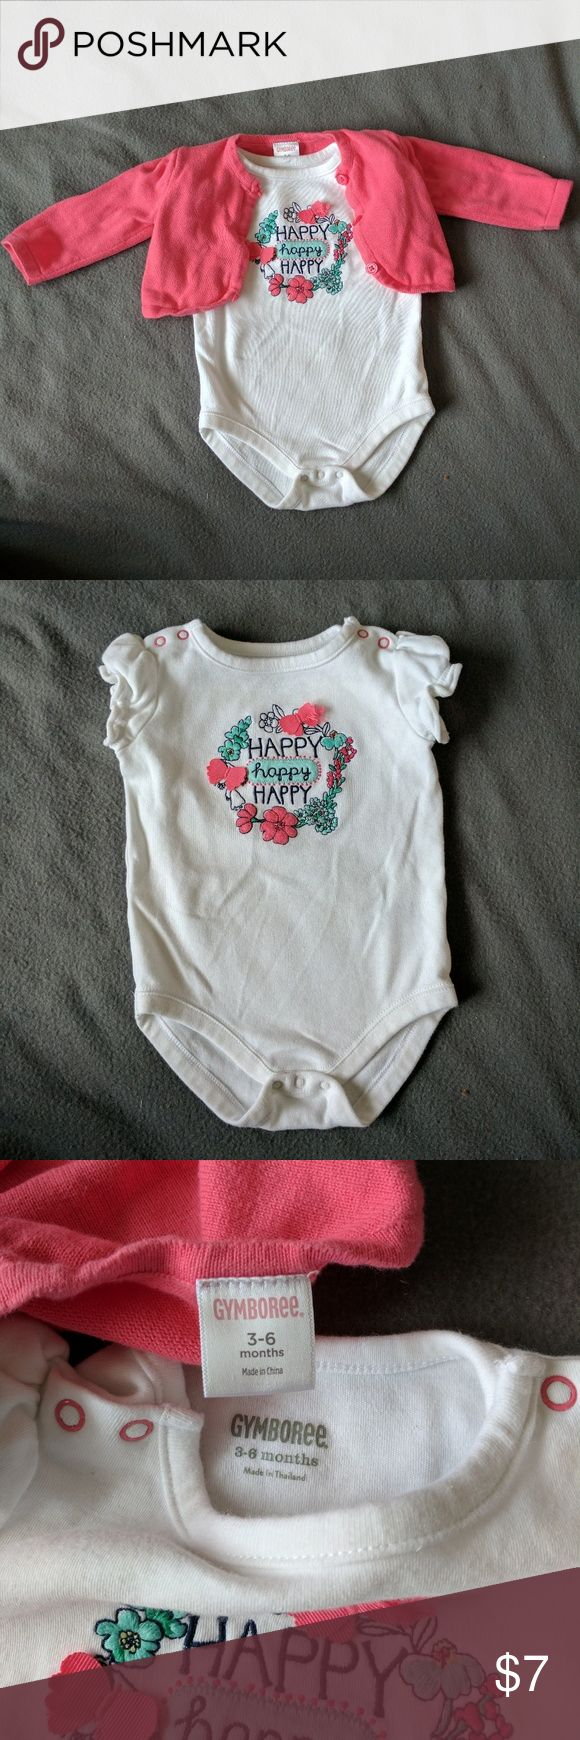 Happy Happy Onesie with Matching Sweater Great condition Gymboree onesie with sweater. Cute for spring! Gymboree Matching Sets